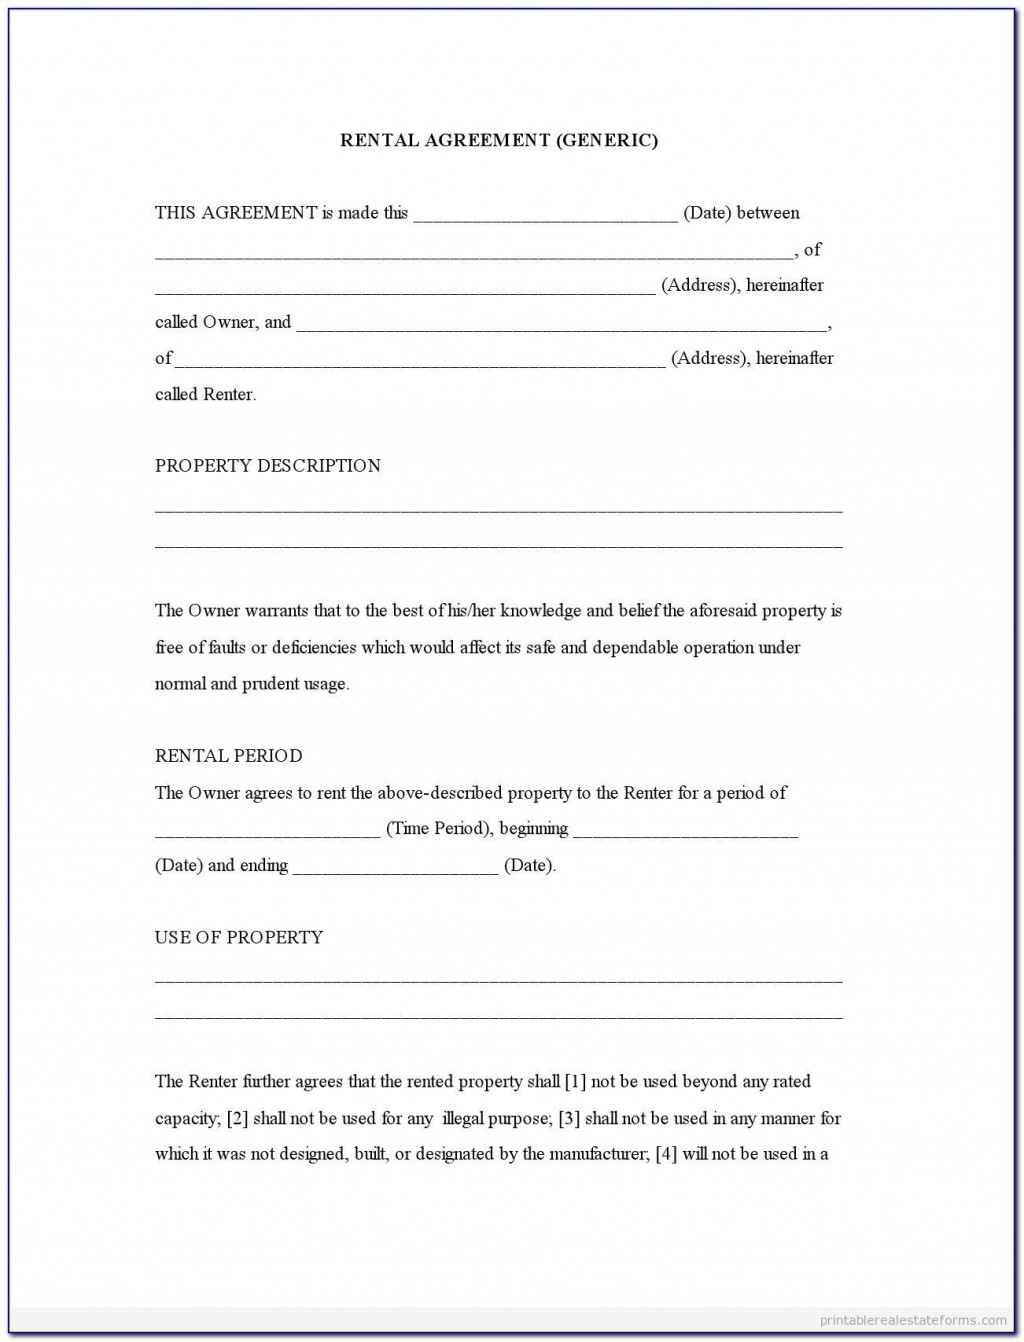 007 Remarkable Rental Agreement Template Word Canada Highest Clarity Large